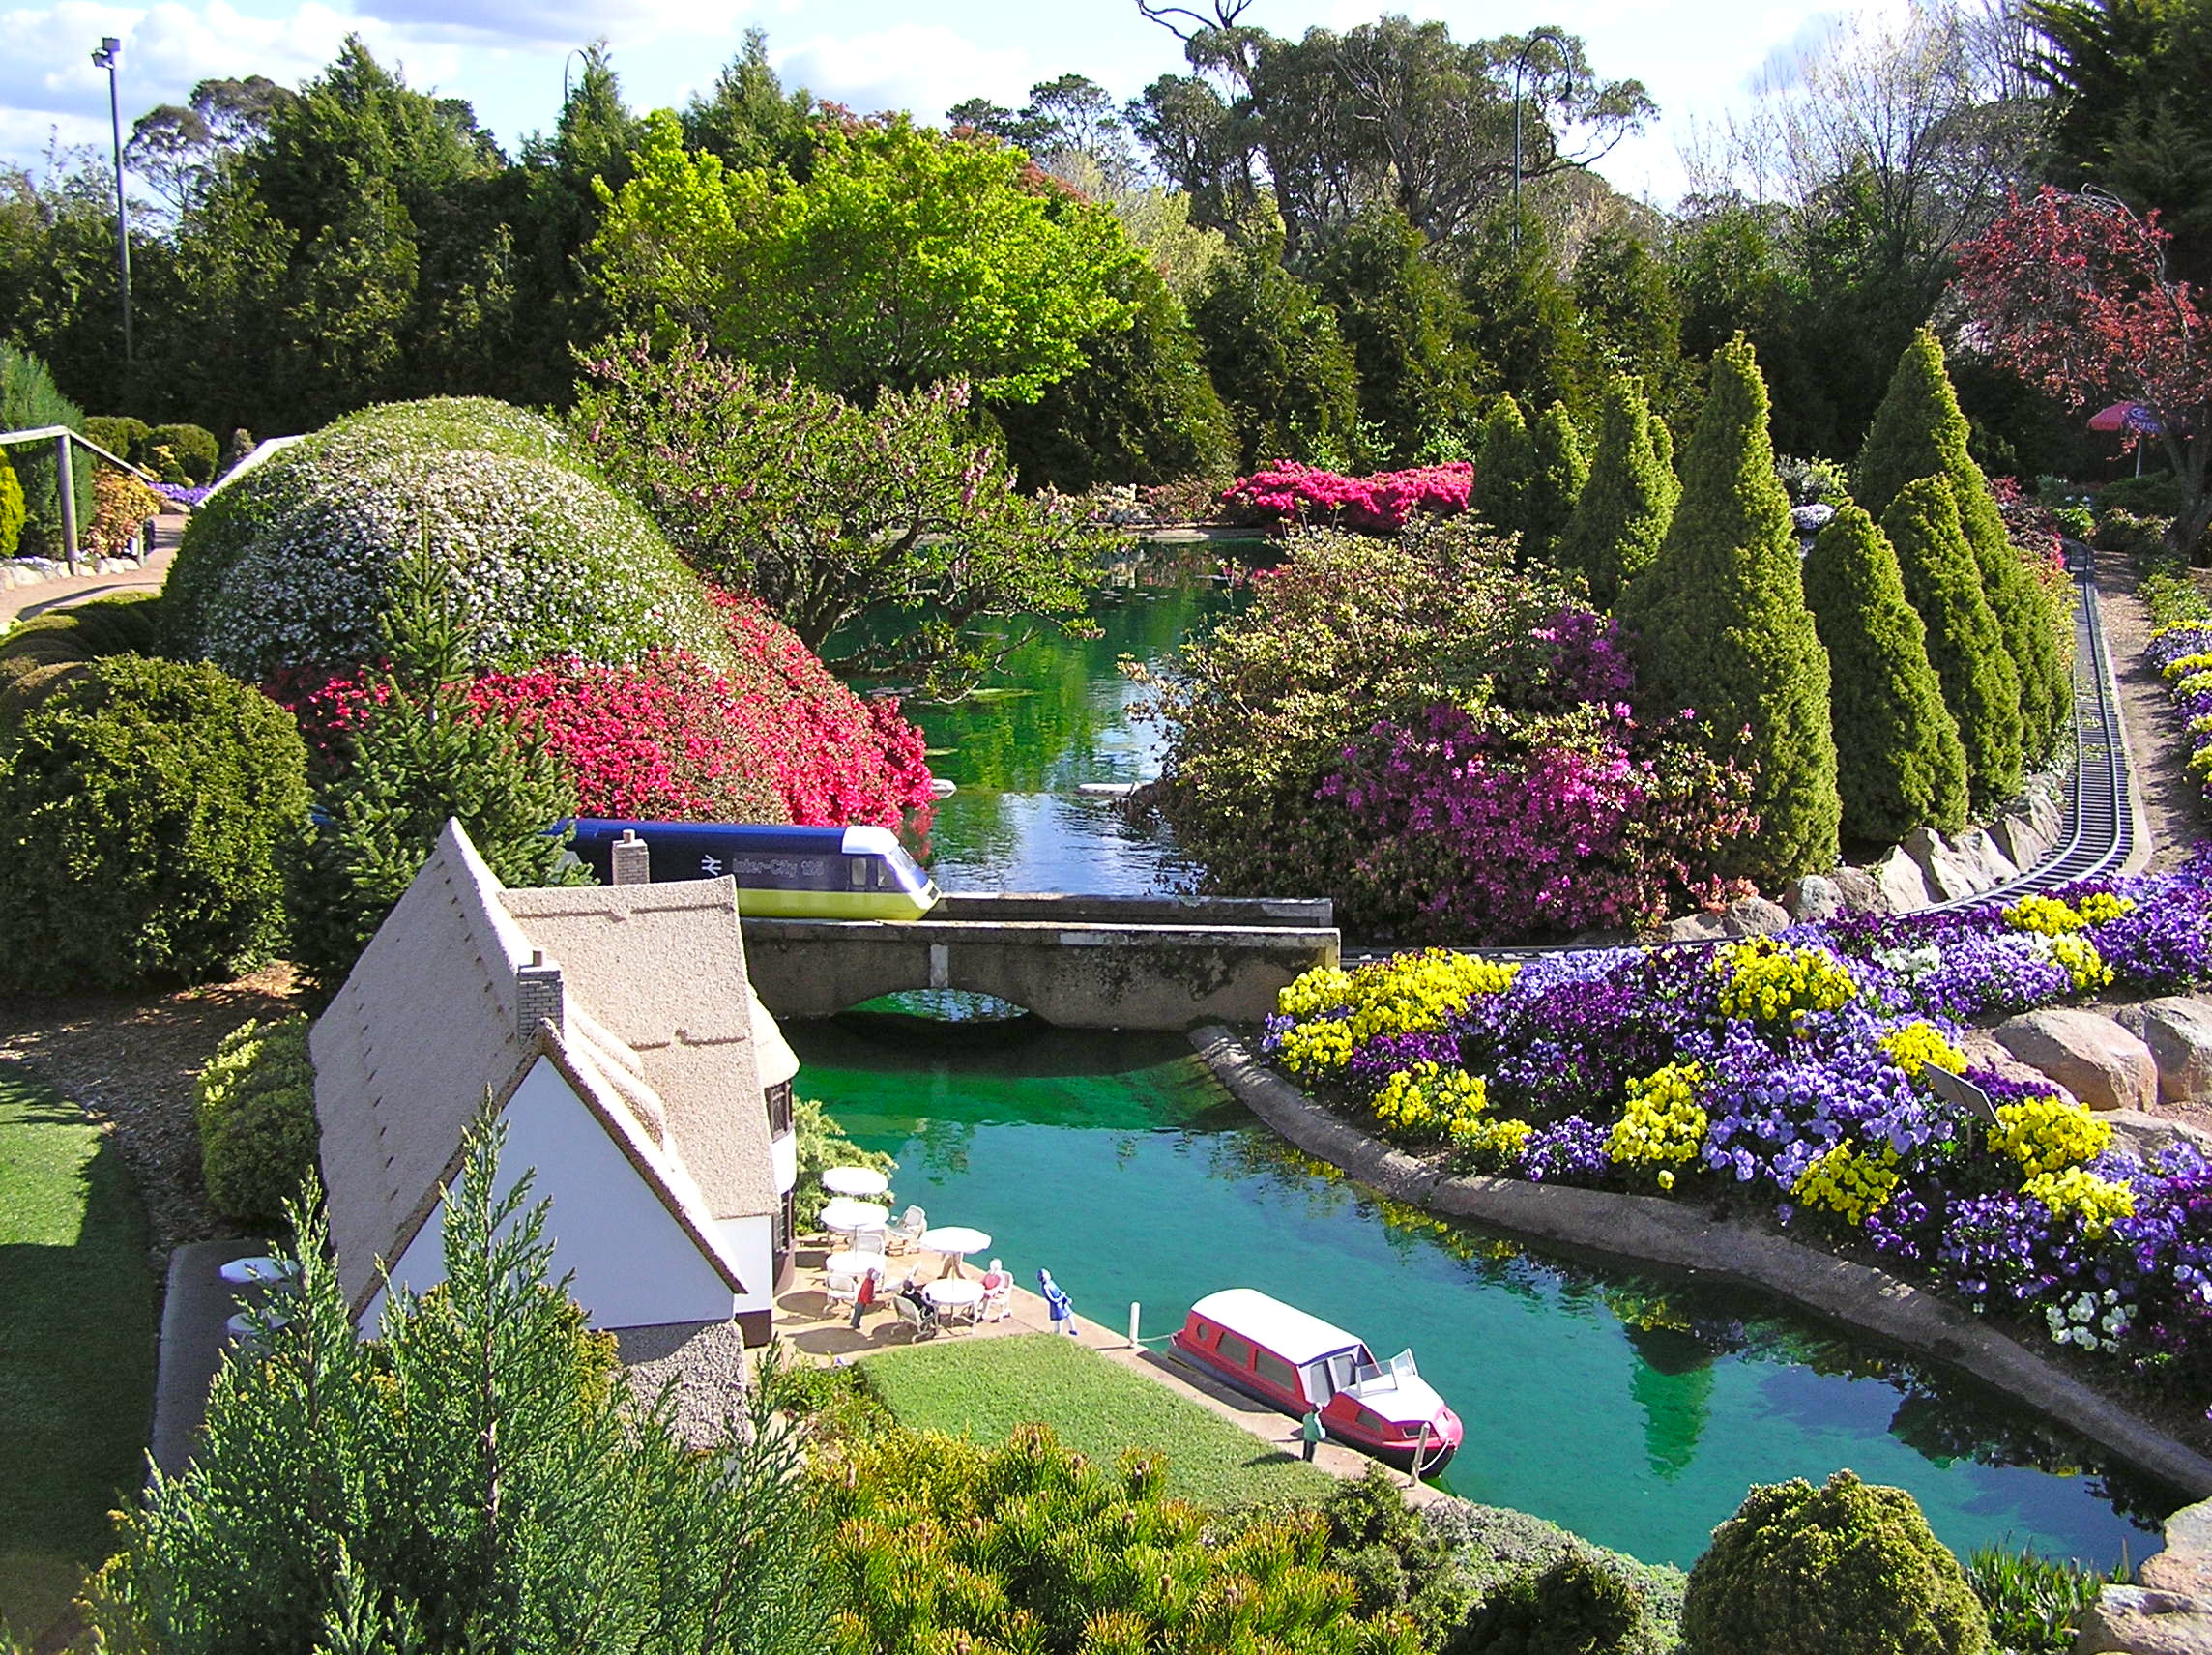 Cockington-Green-Gardens-Canberra-Australia